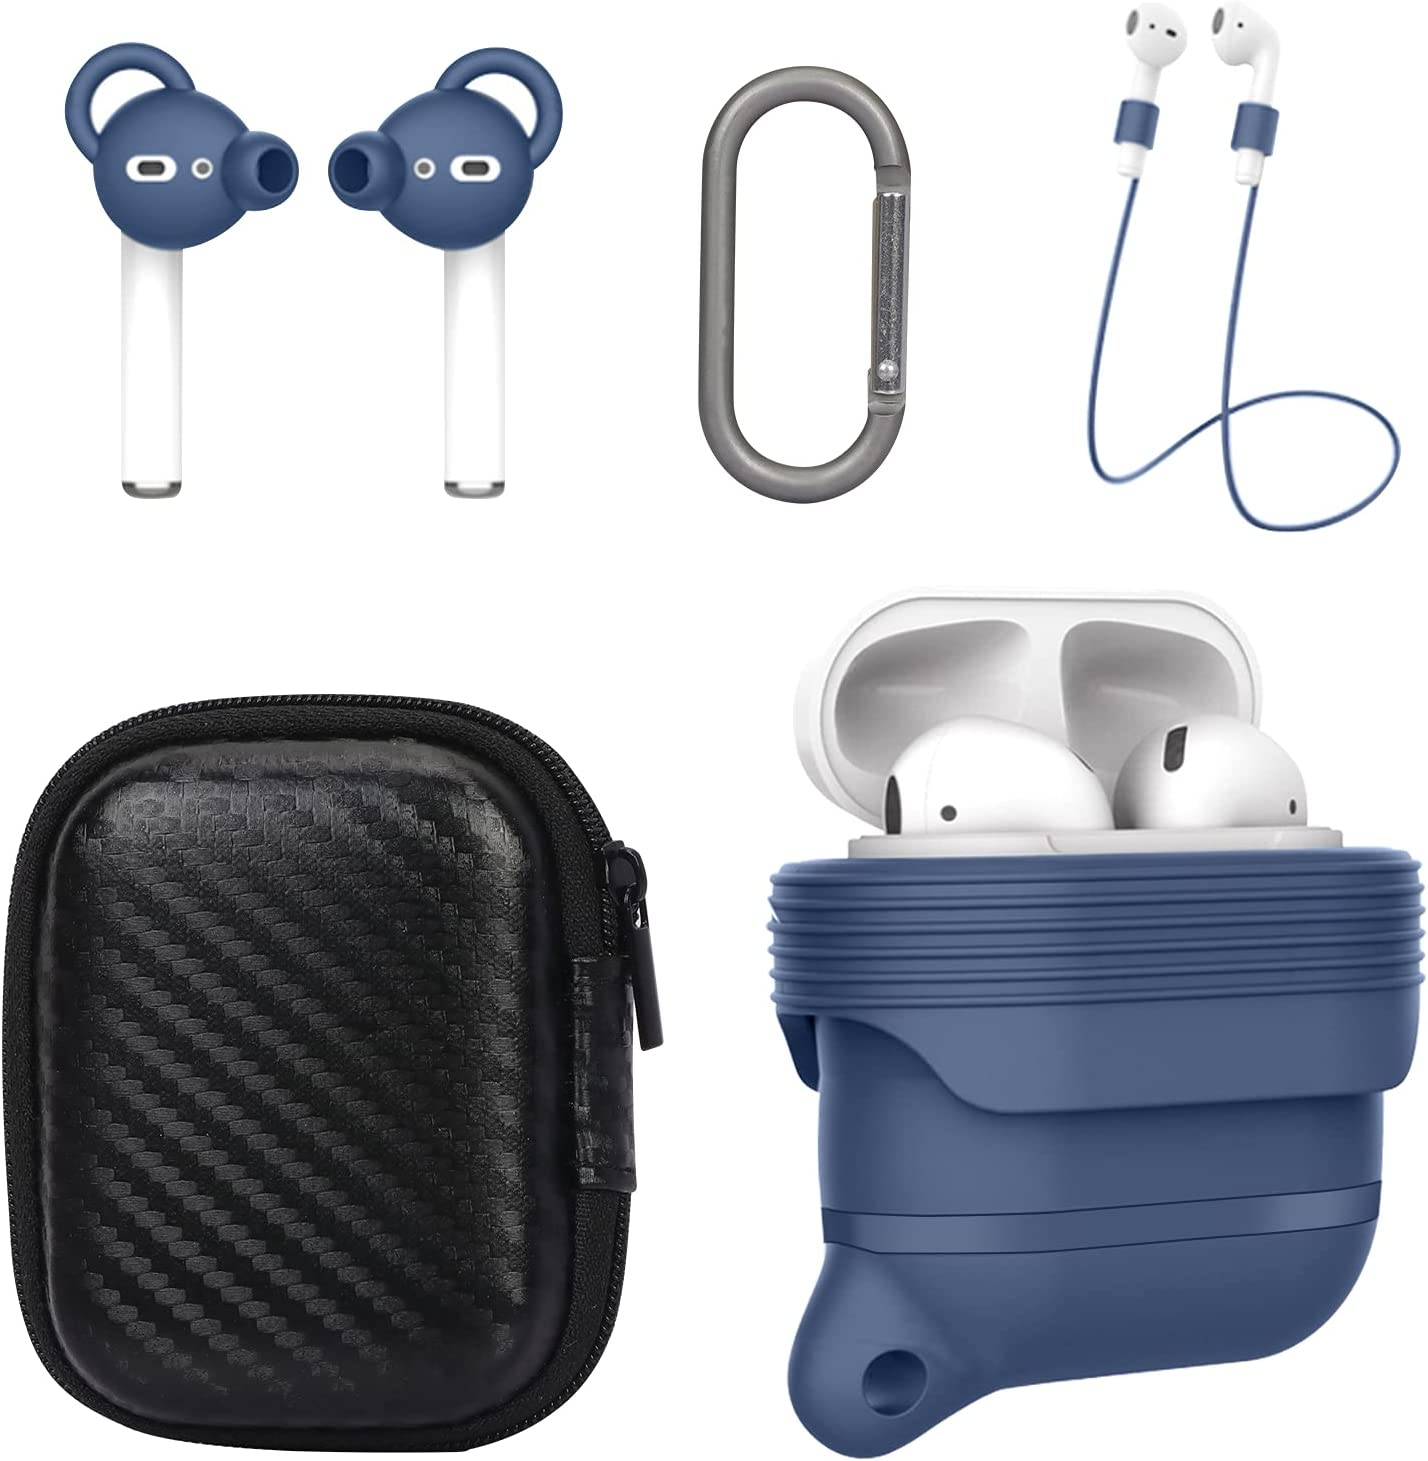 Buy FYY Airpods Case, 20 in 20 Accessories Set Silicone Protective ...